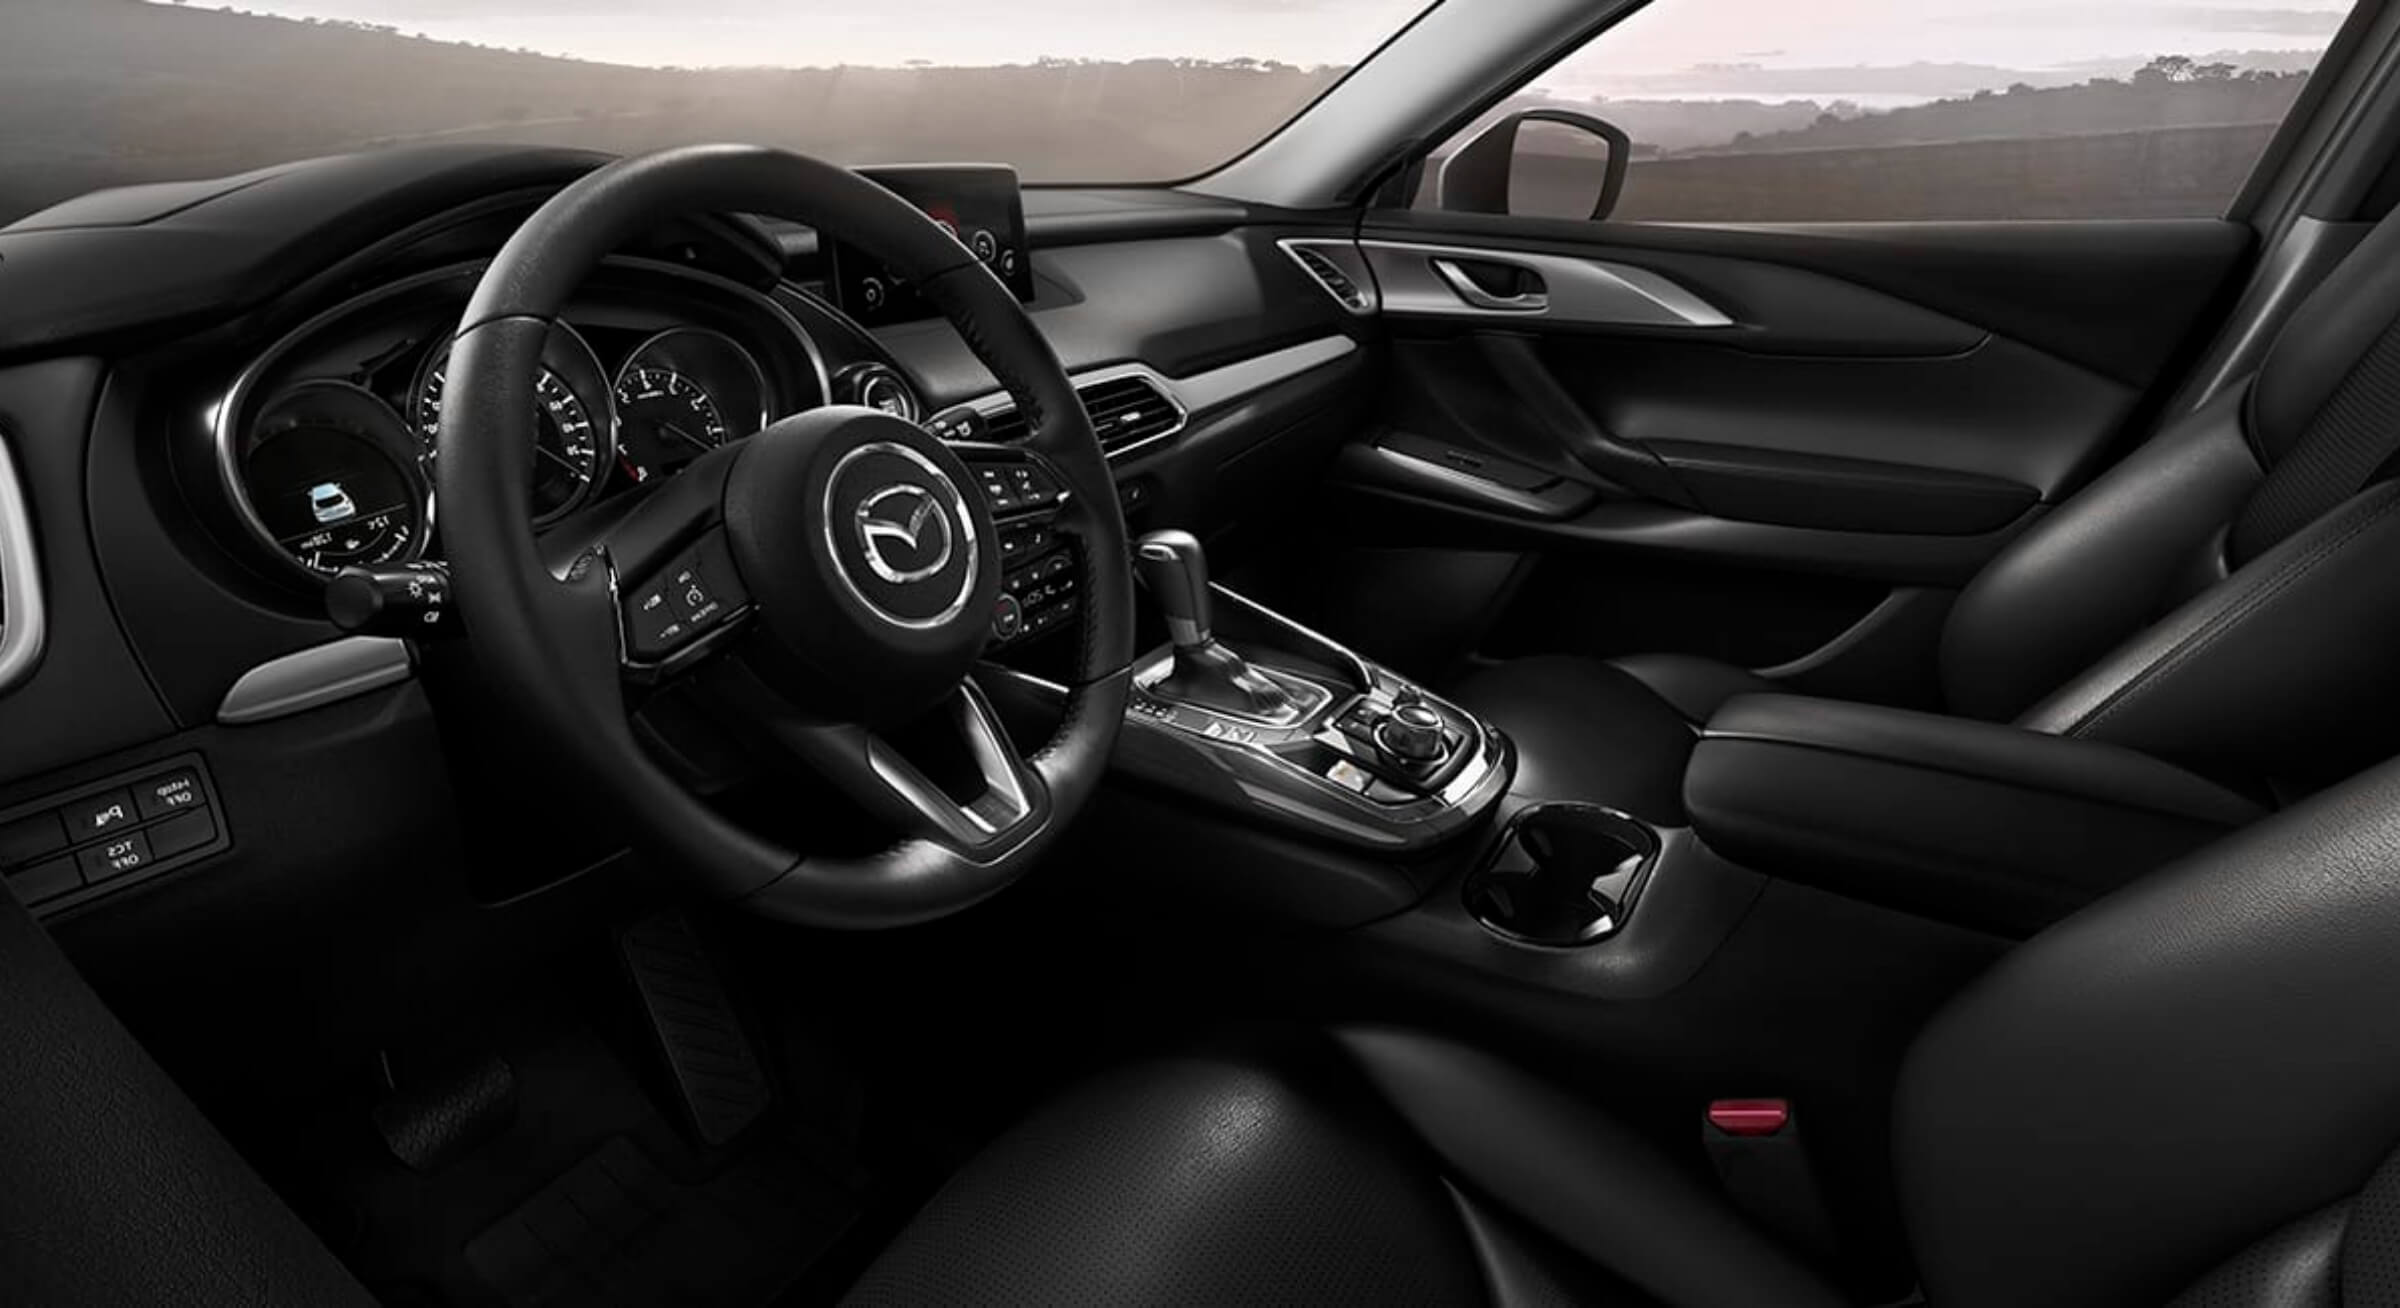 Mazdacx9-Black Leatherette